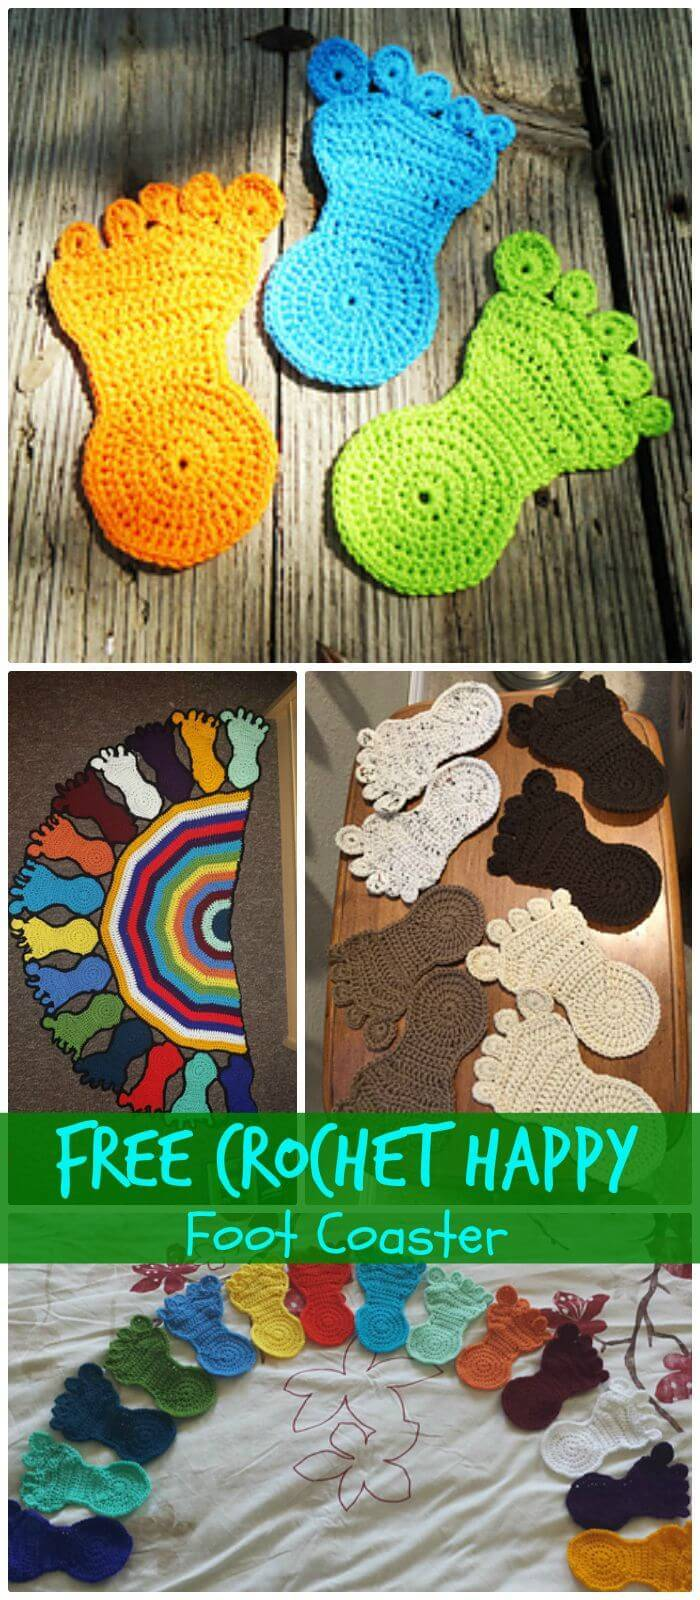 DIY Free Crochet Happy Foot Coaster, How to crochet a coaster for beginners!